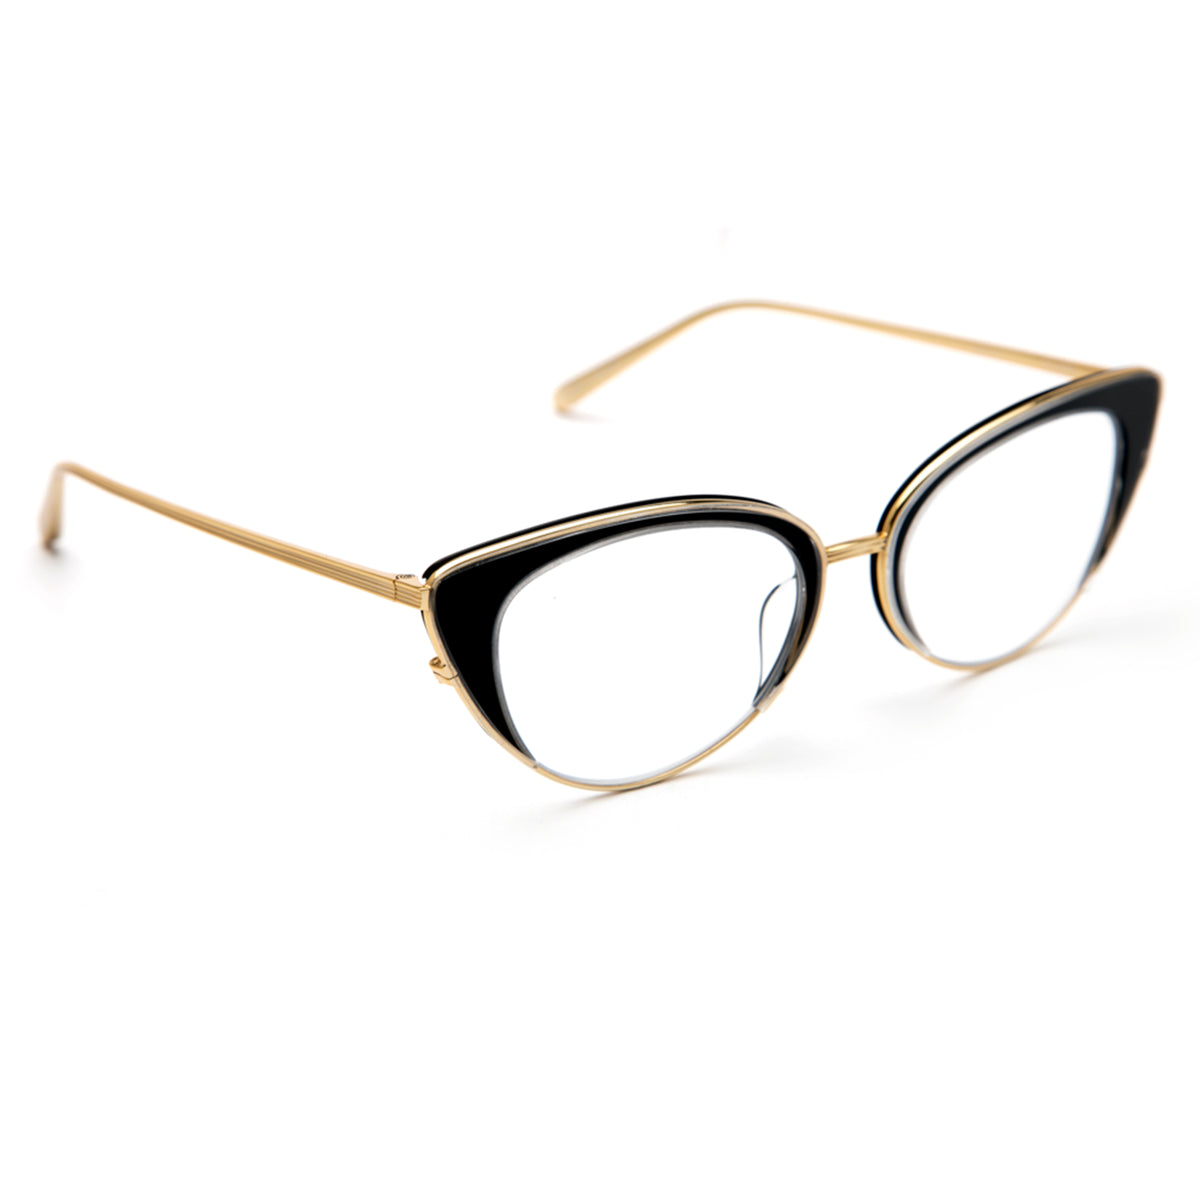 CLARA | Crystal and Black + 18K Titanium and handcrafted acetate cat-eye Optical frames.